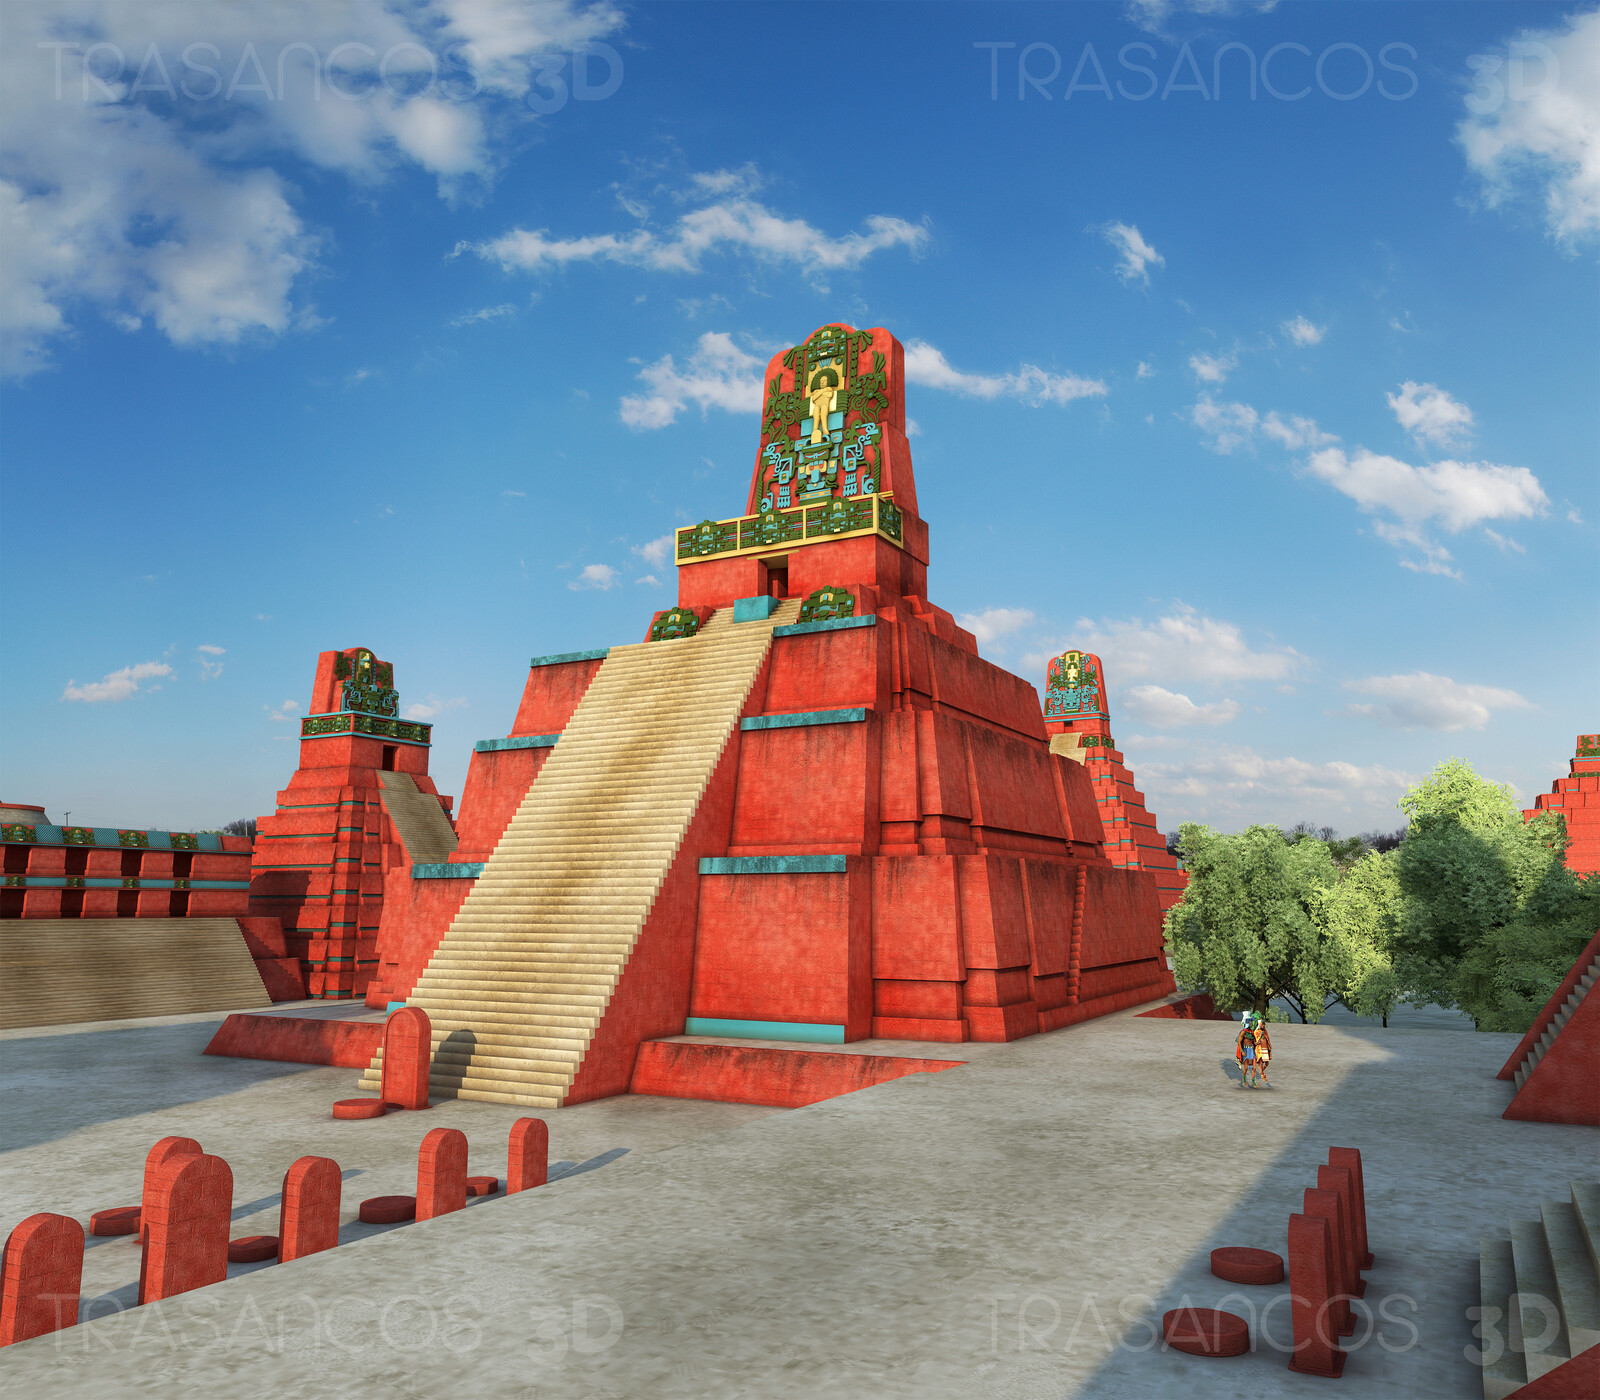 View of te reconstructed Temple II in the Great Square of Tikal. Modeled in collaboration with: - Andrés Armesto - Alejandro Soriano - Carlos Paz